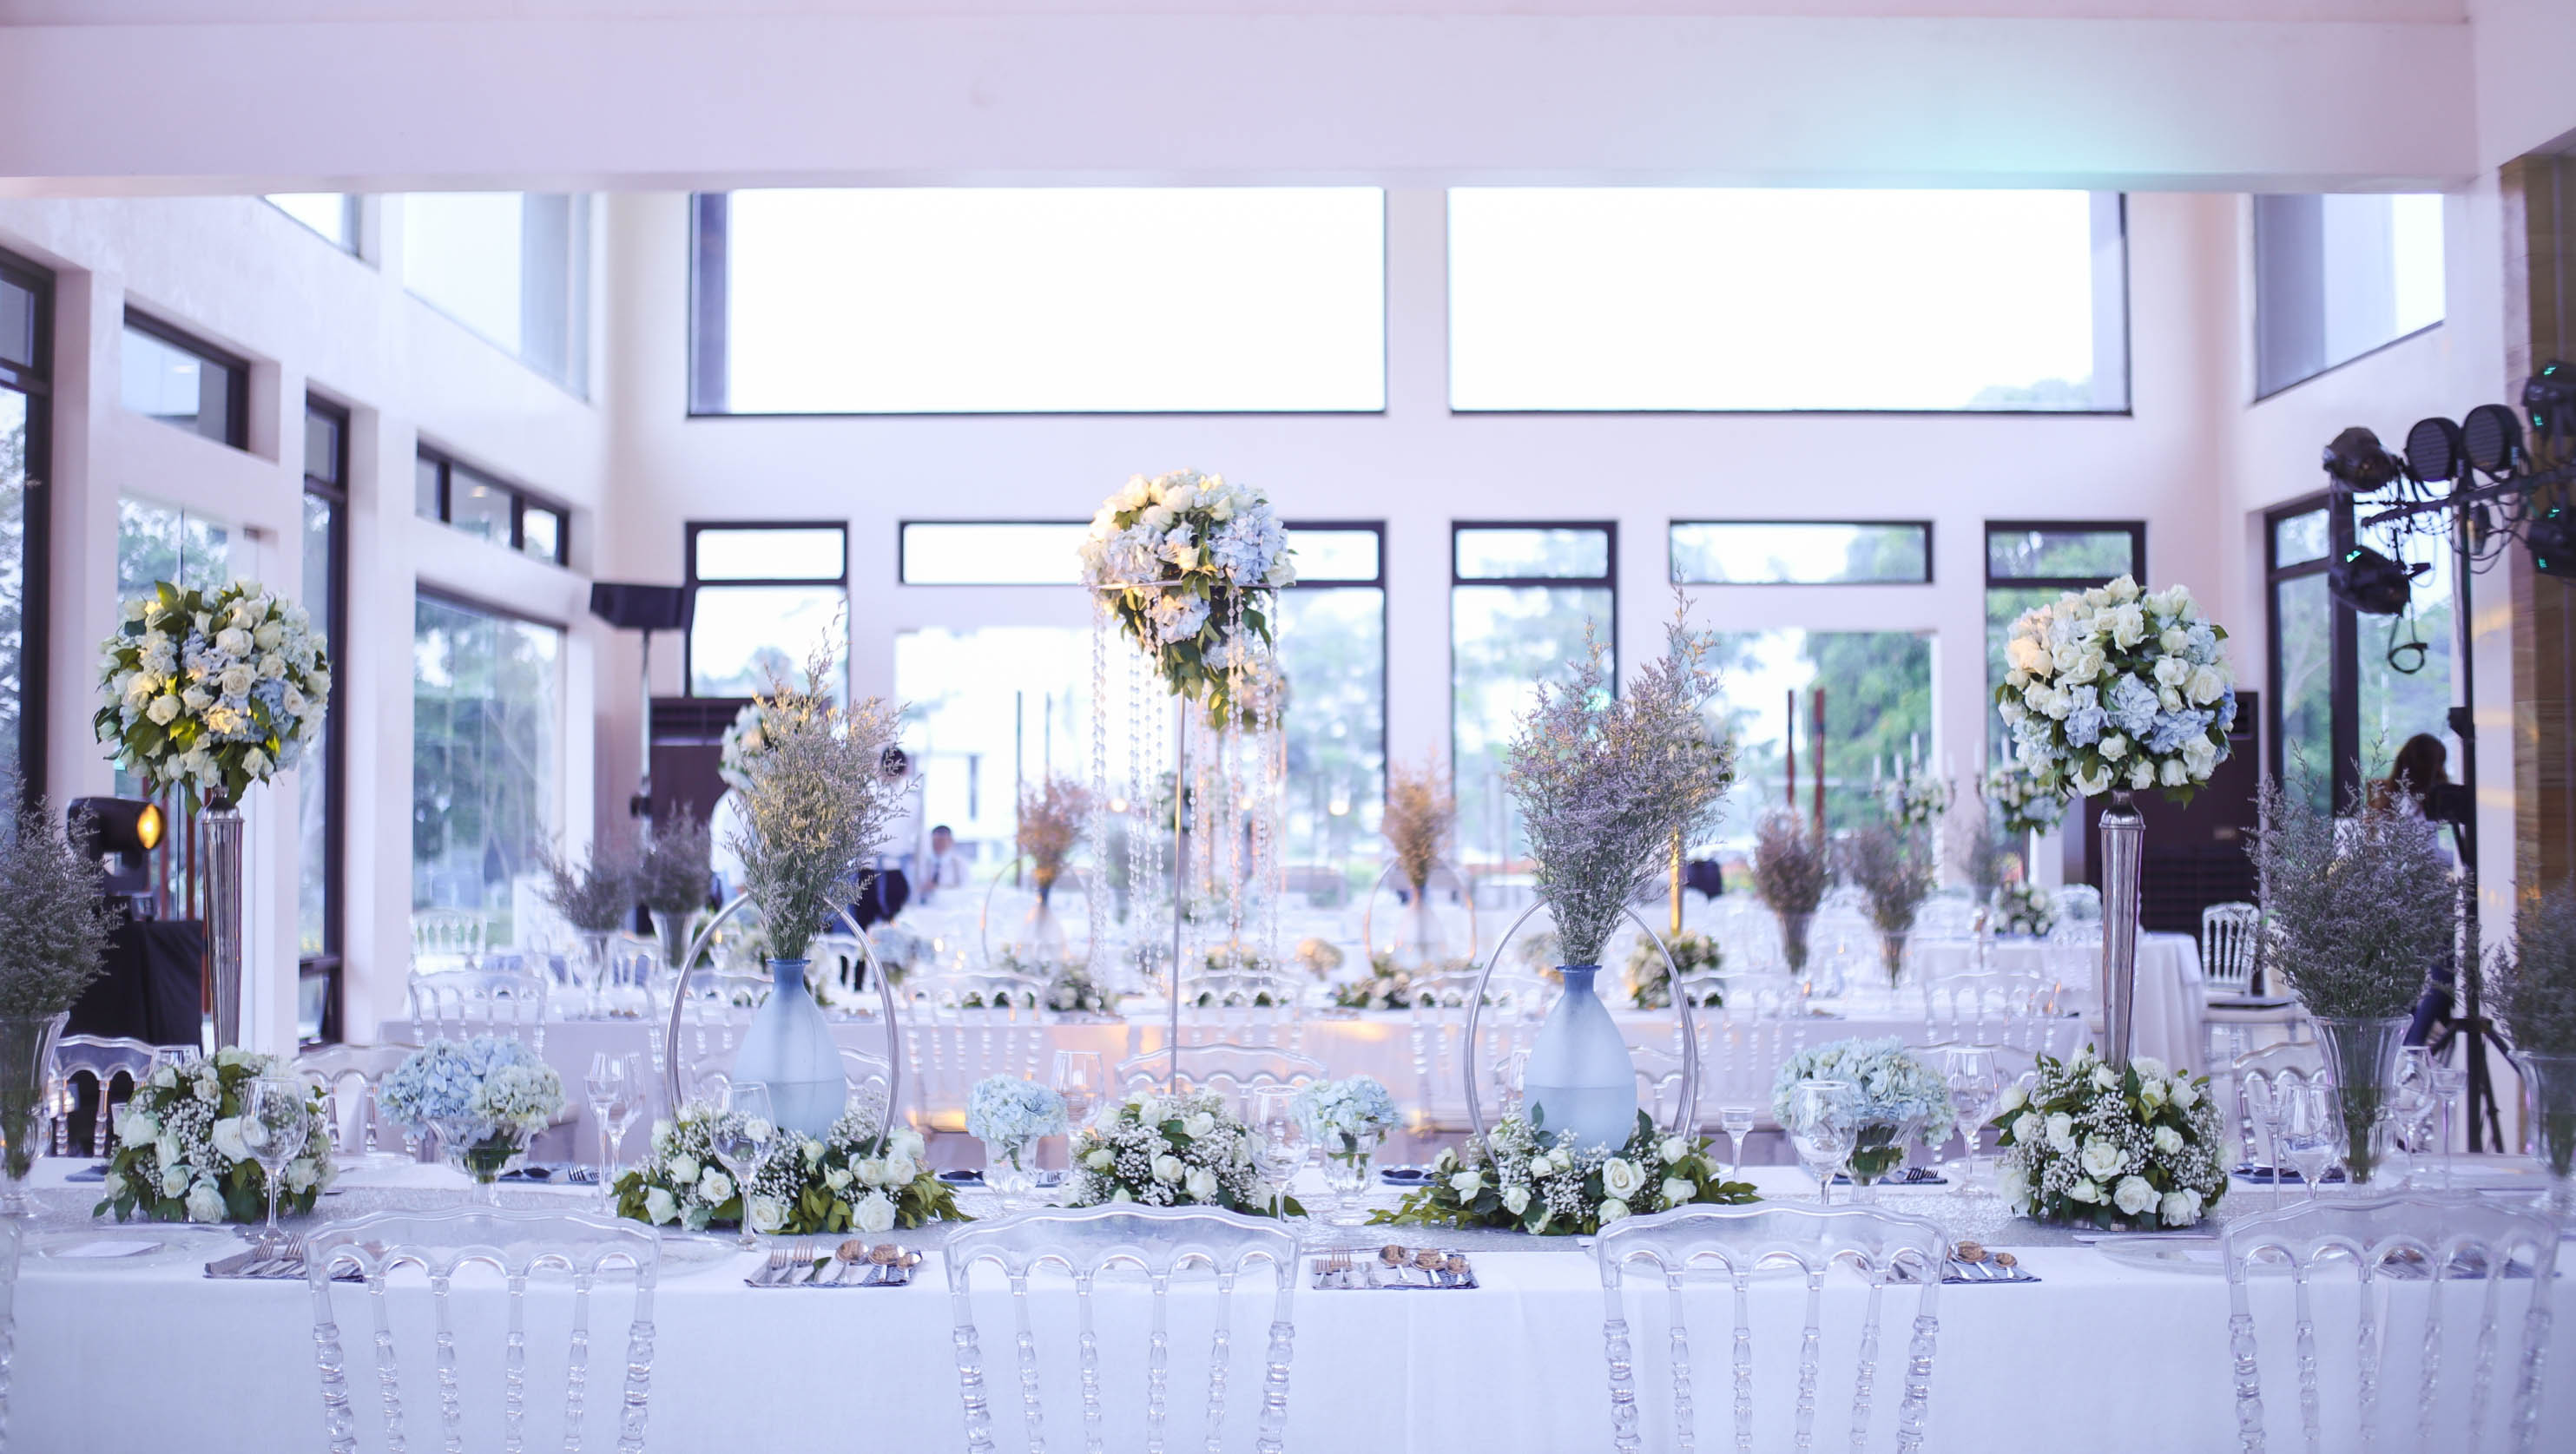 Town's Delight Catering & Events at Club Ananda Wedding Venue